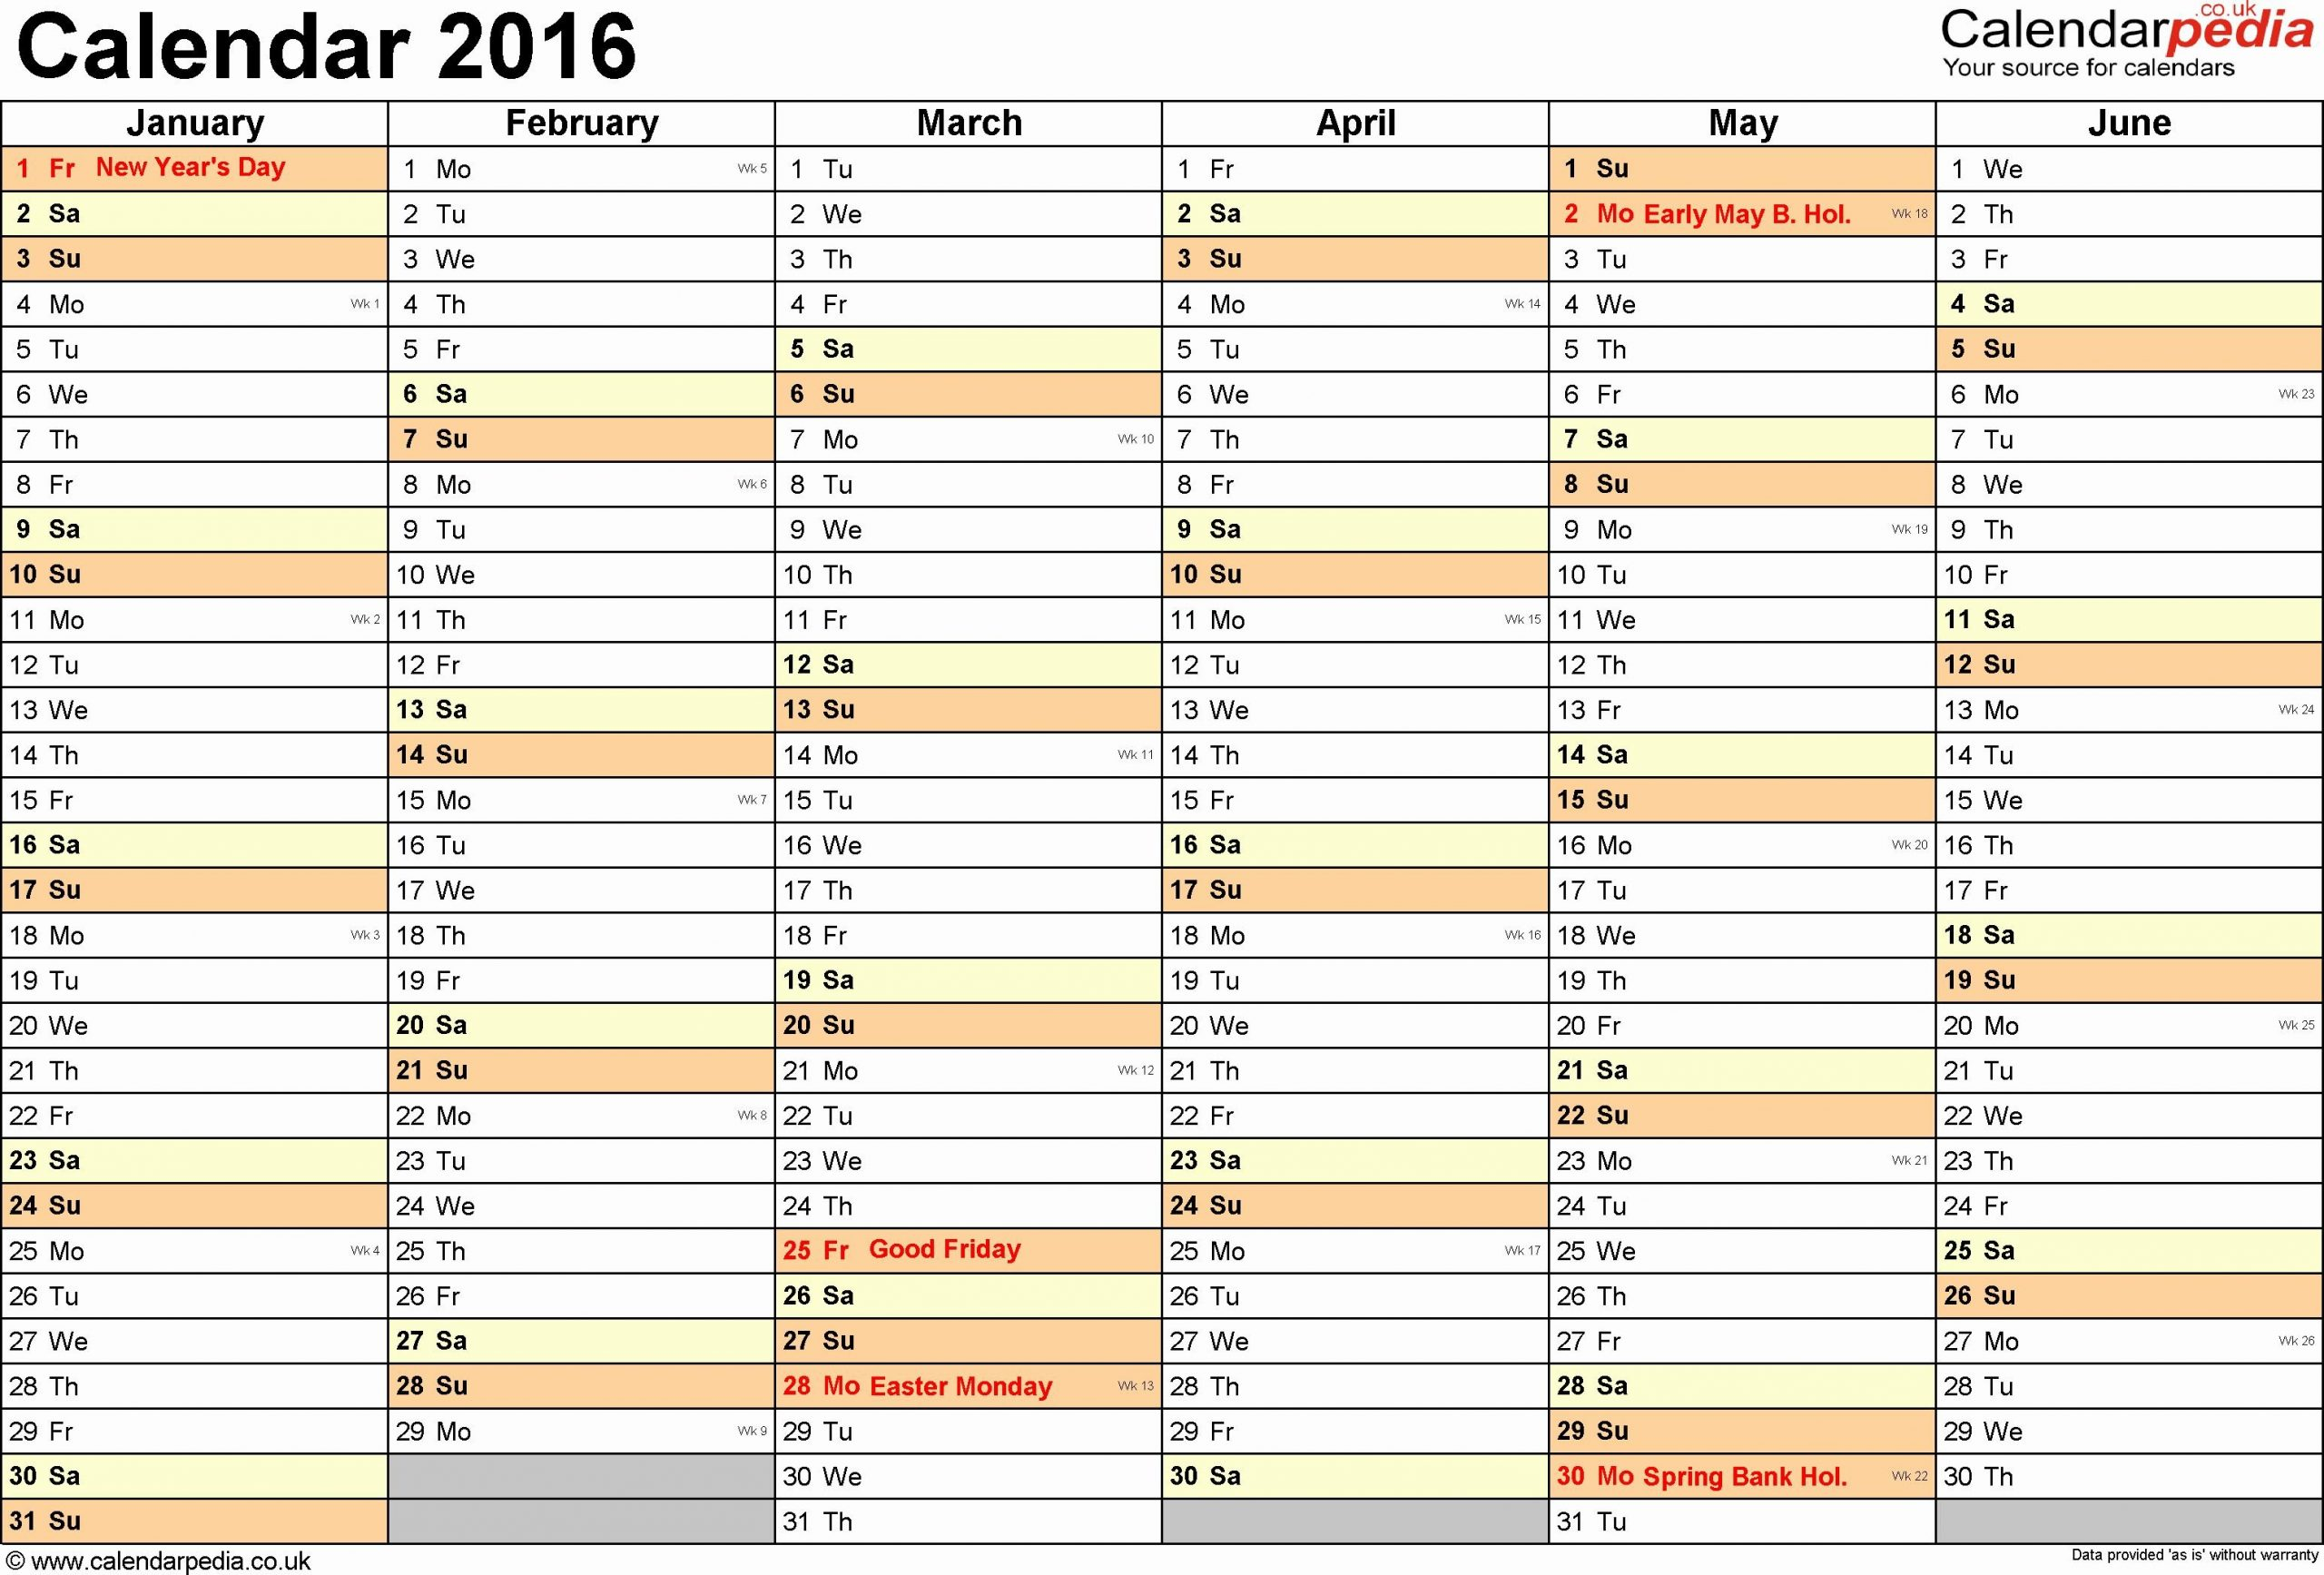 Agenda With Time Slots In 2020 | Free Printable Calendar Month Calendar With Time Slots